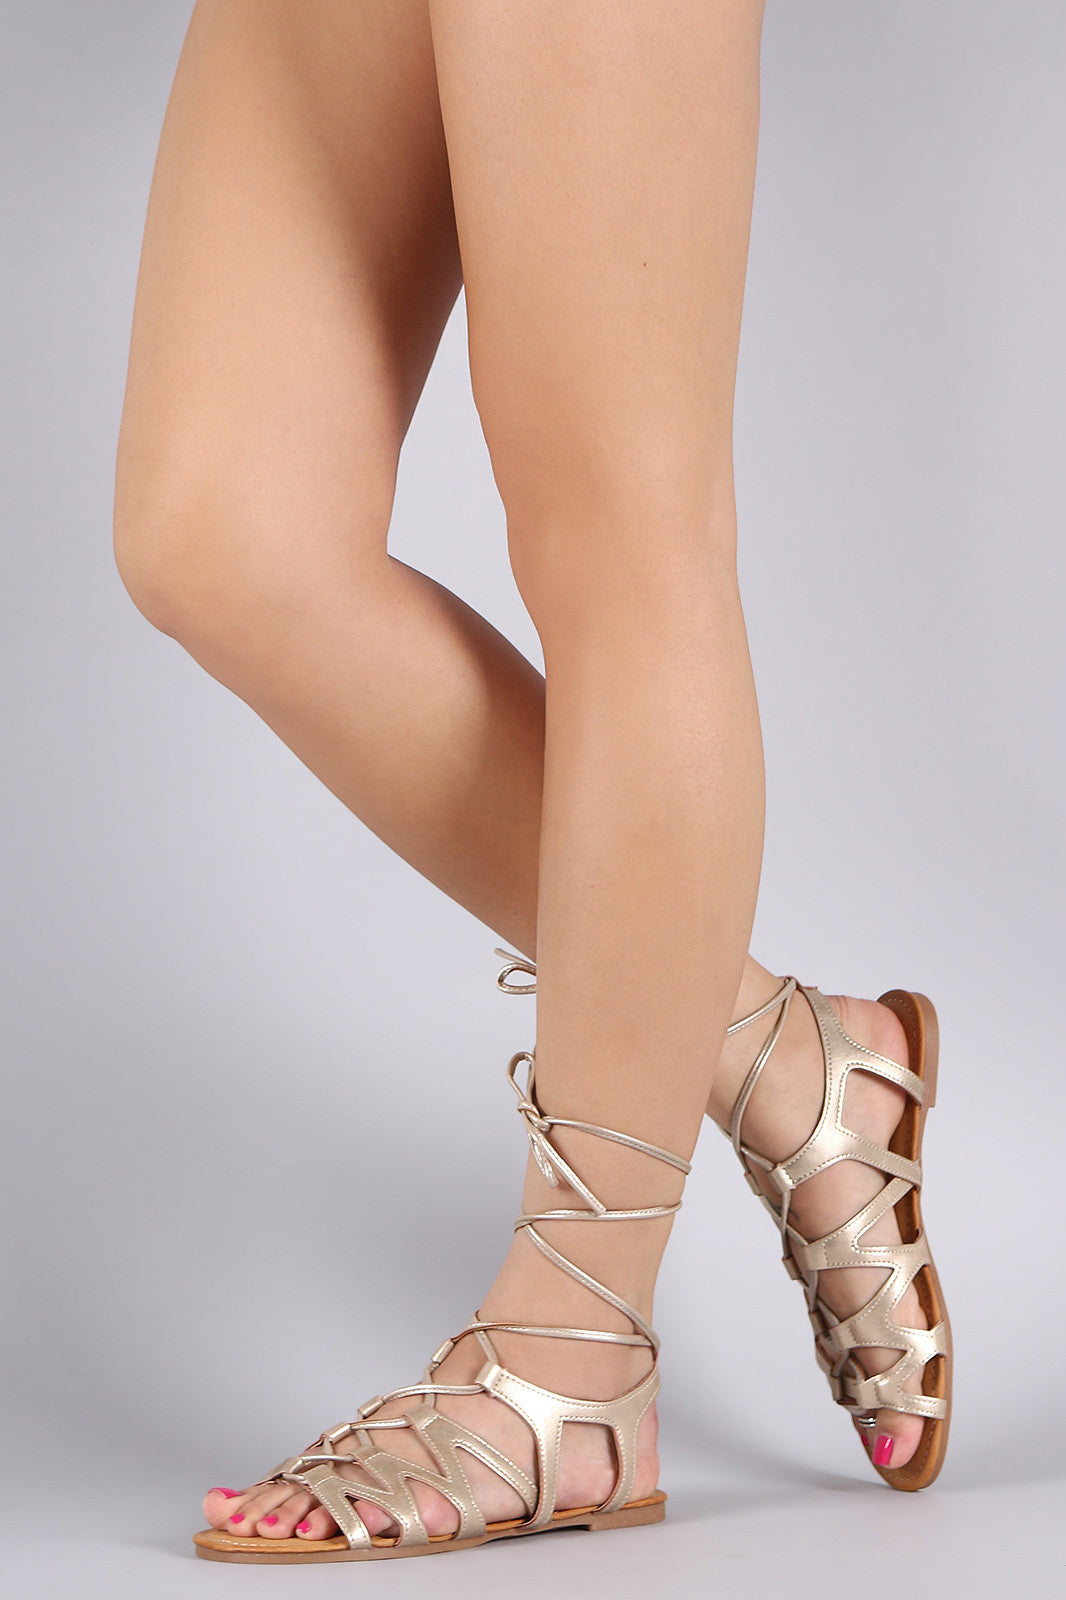 Bamboo Leg Wrap Lace Up Gladiator Sandal - Thick 'N' Curvy Shop - 2